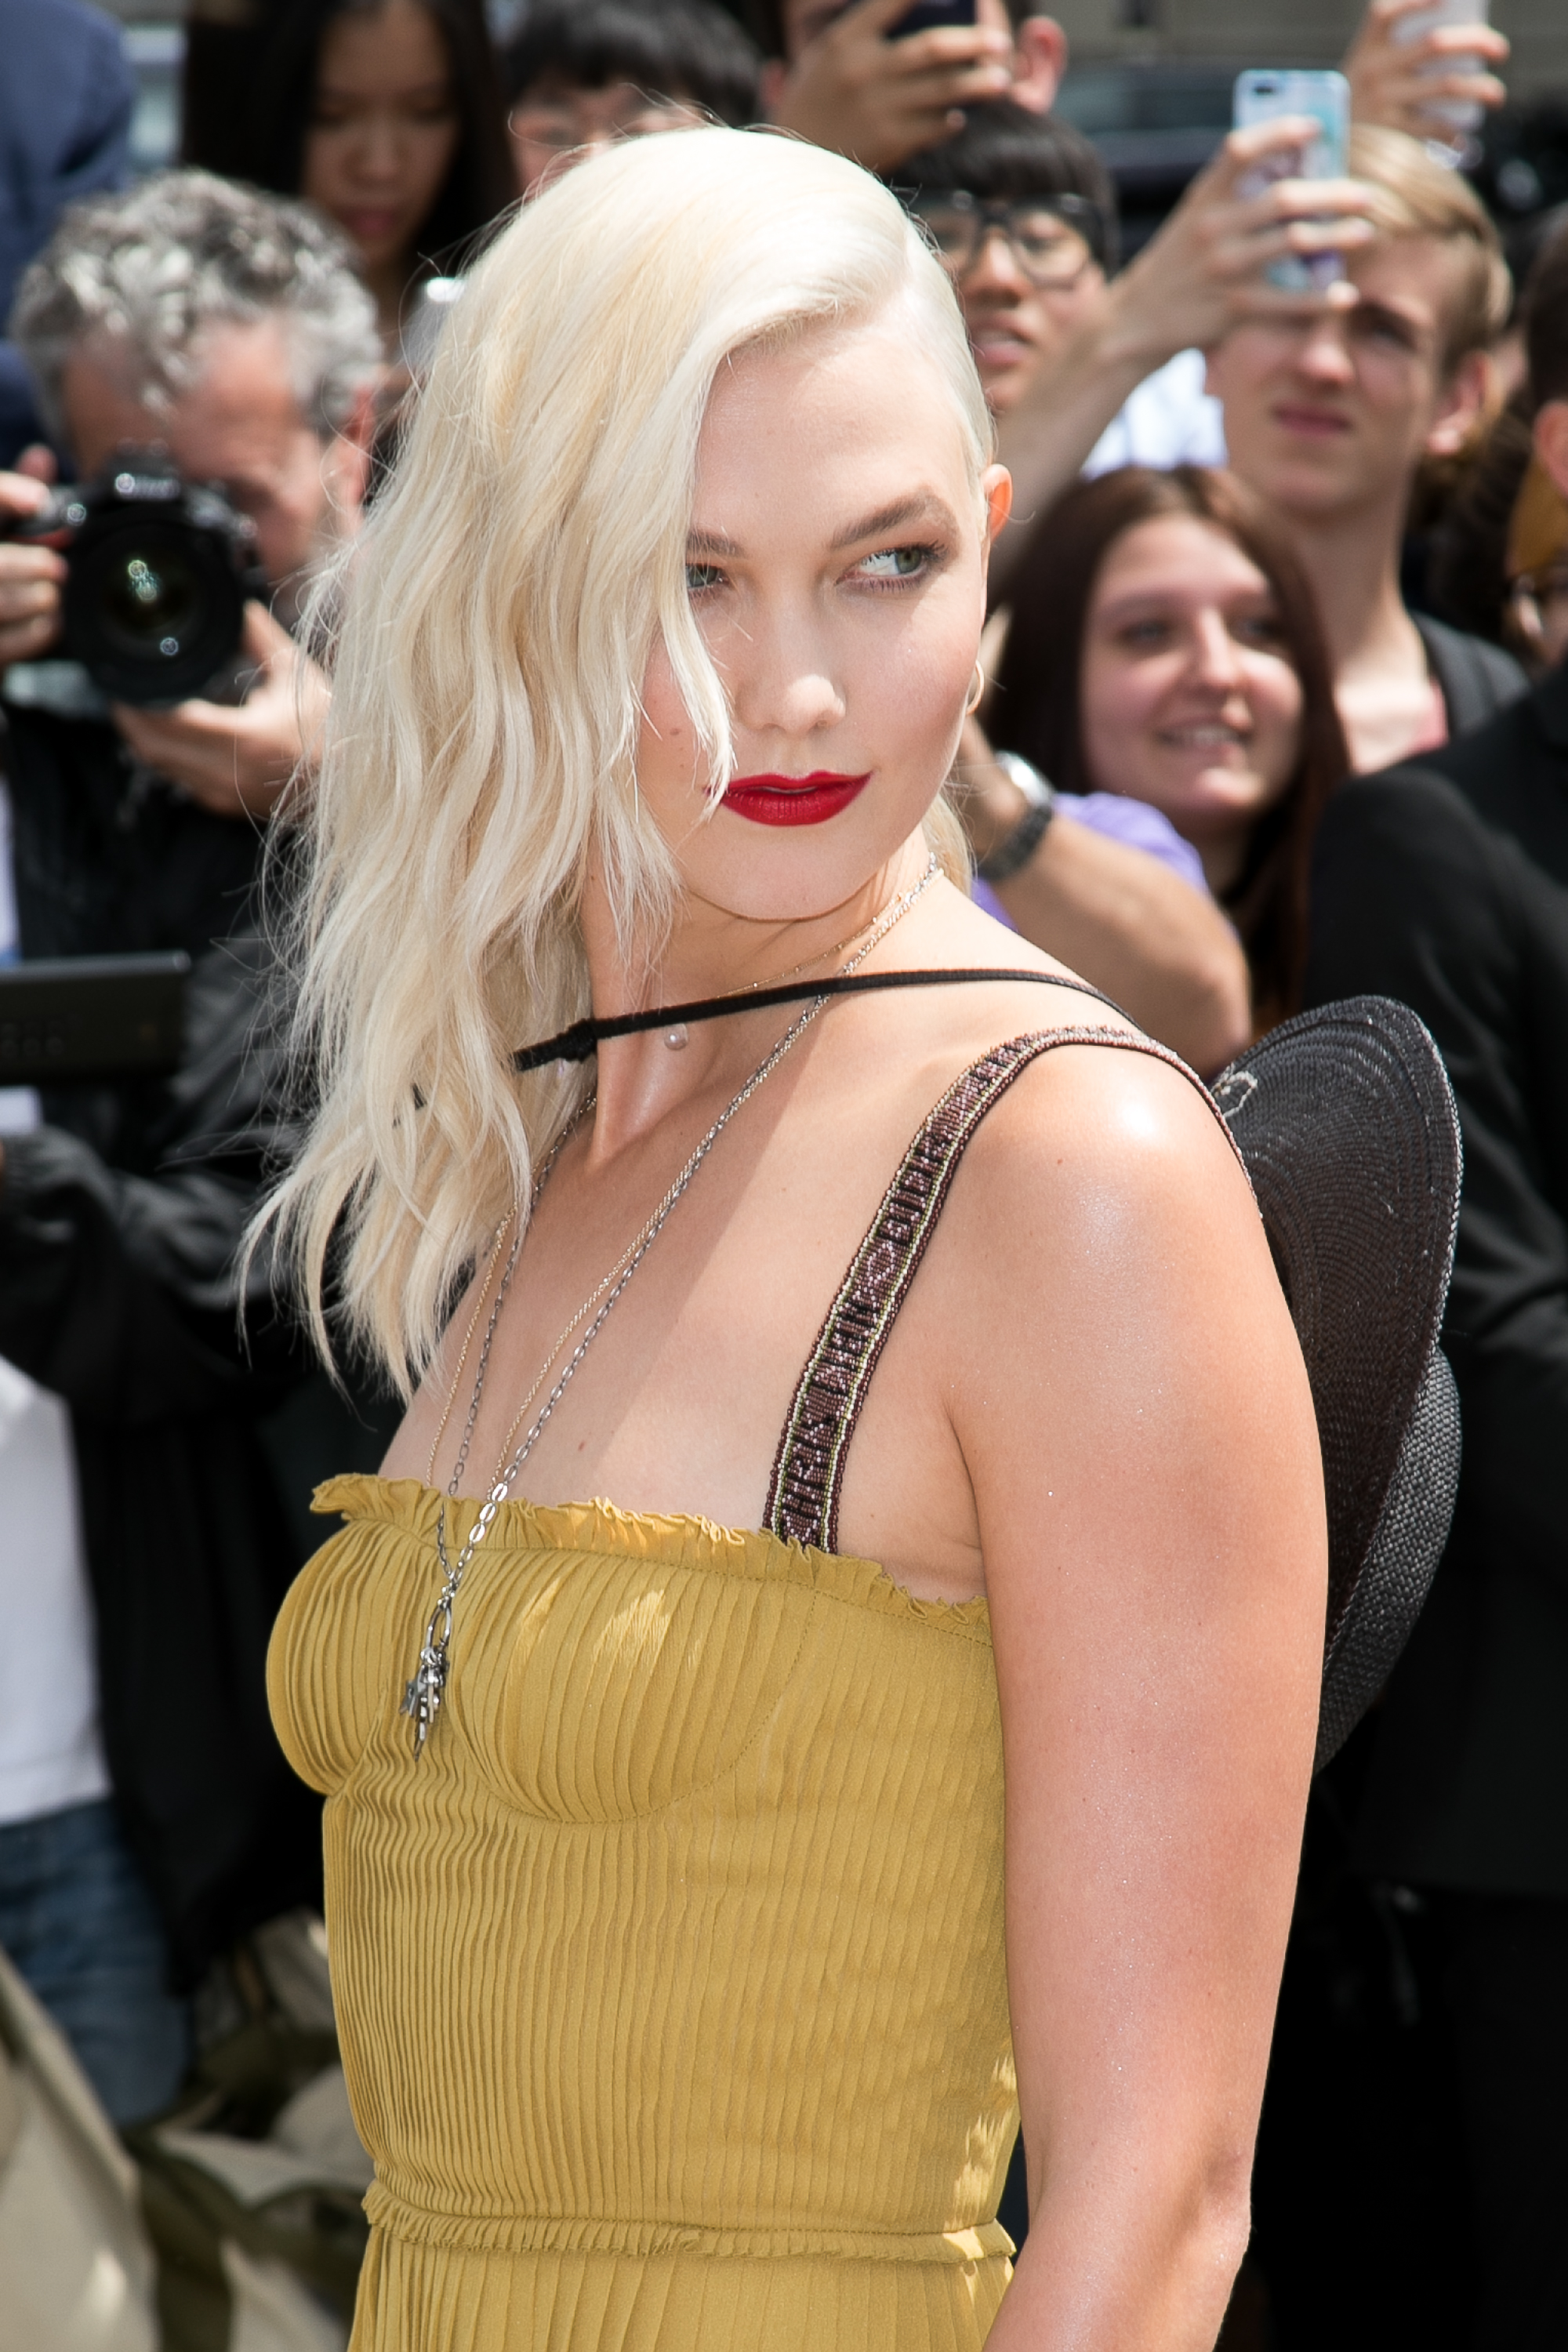 Leveling Up: Why Platinum Blonde Will Remain the Cool-Girl Color for 2018